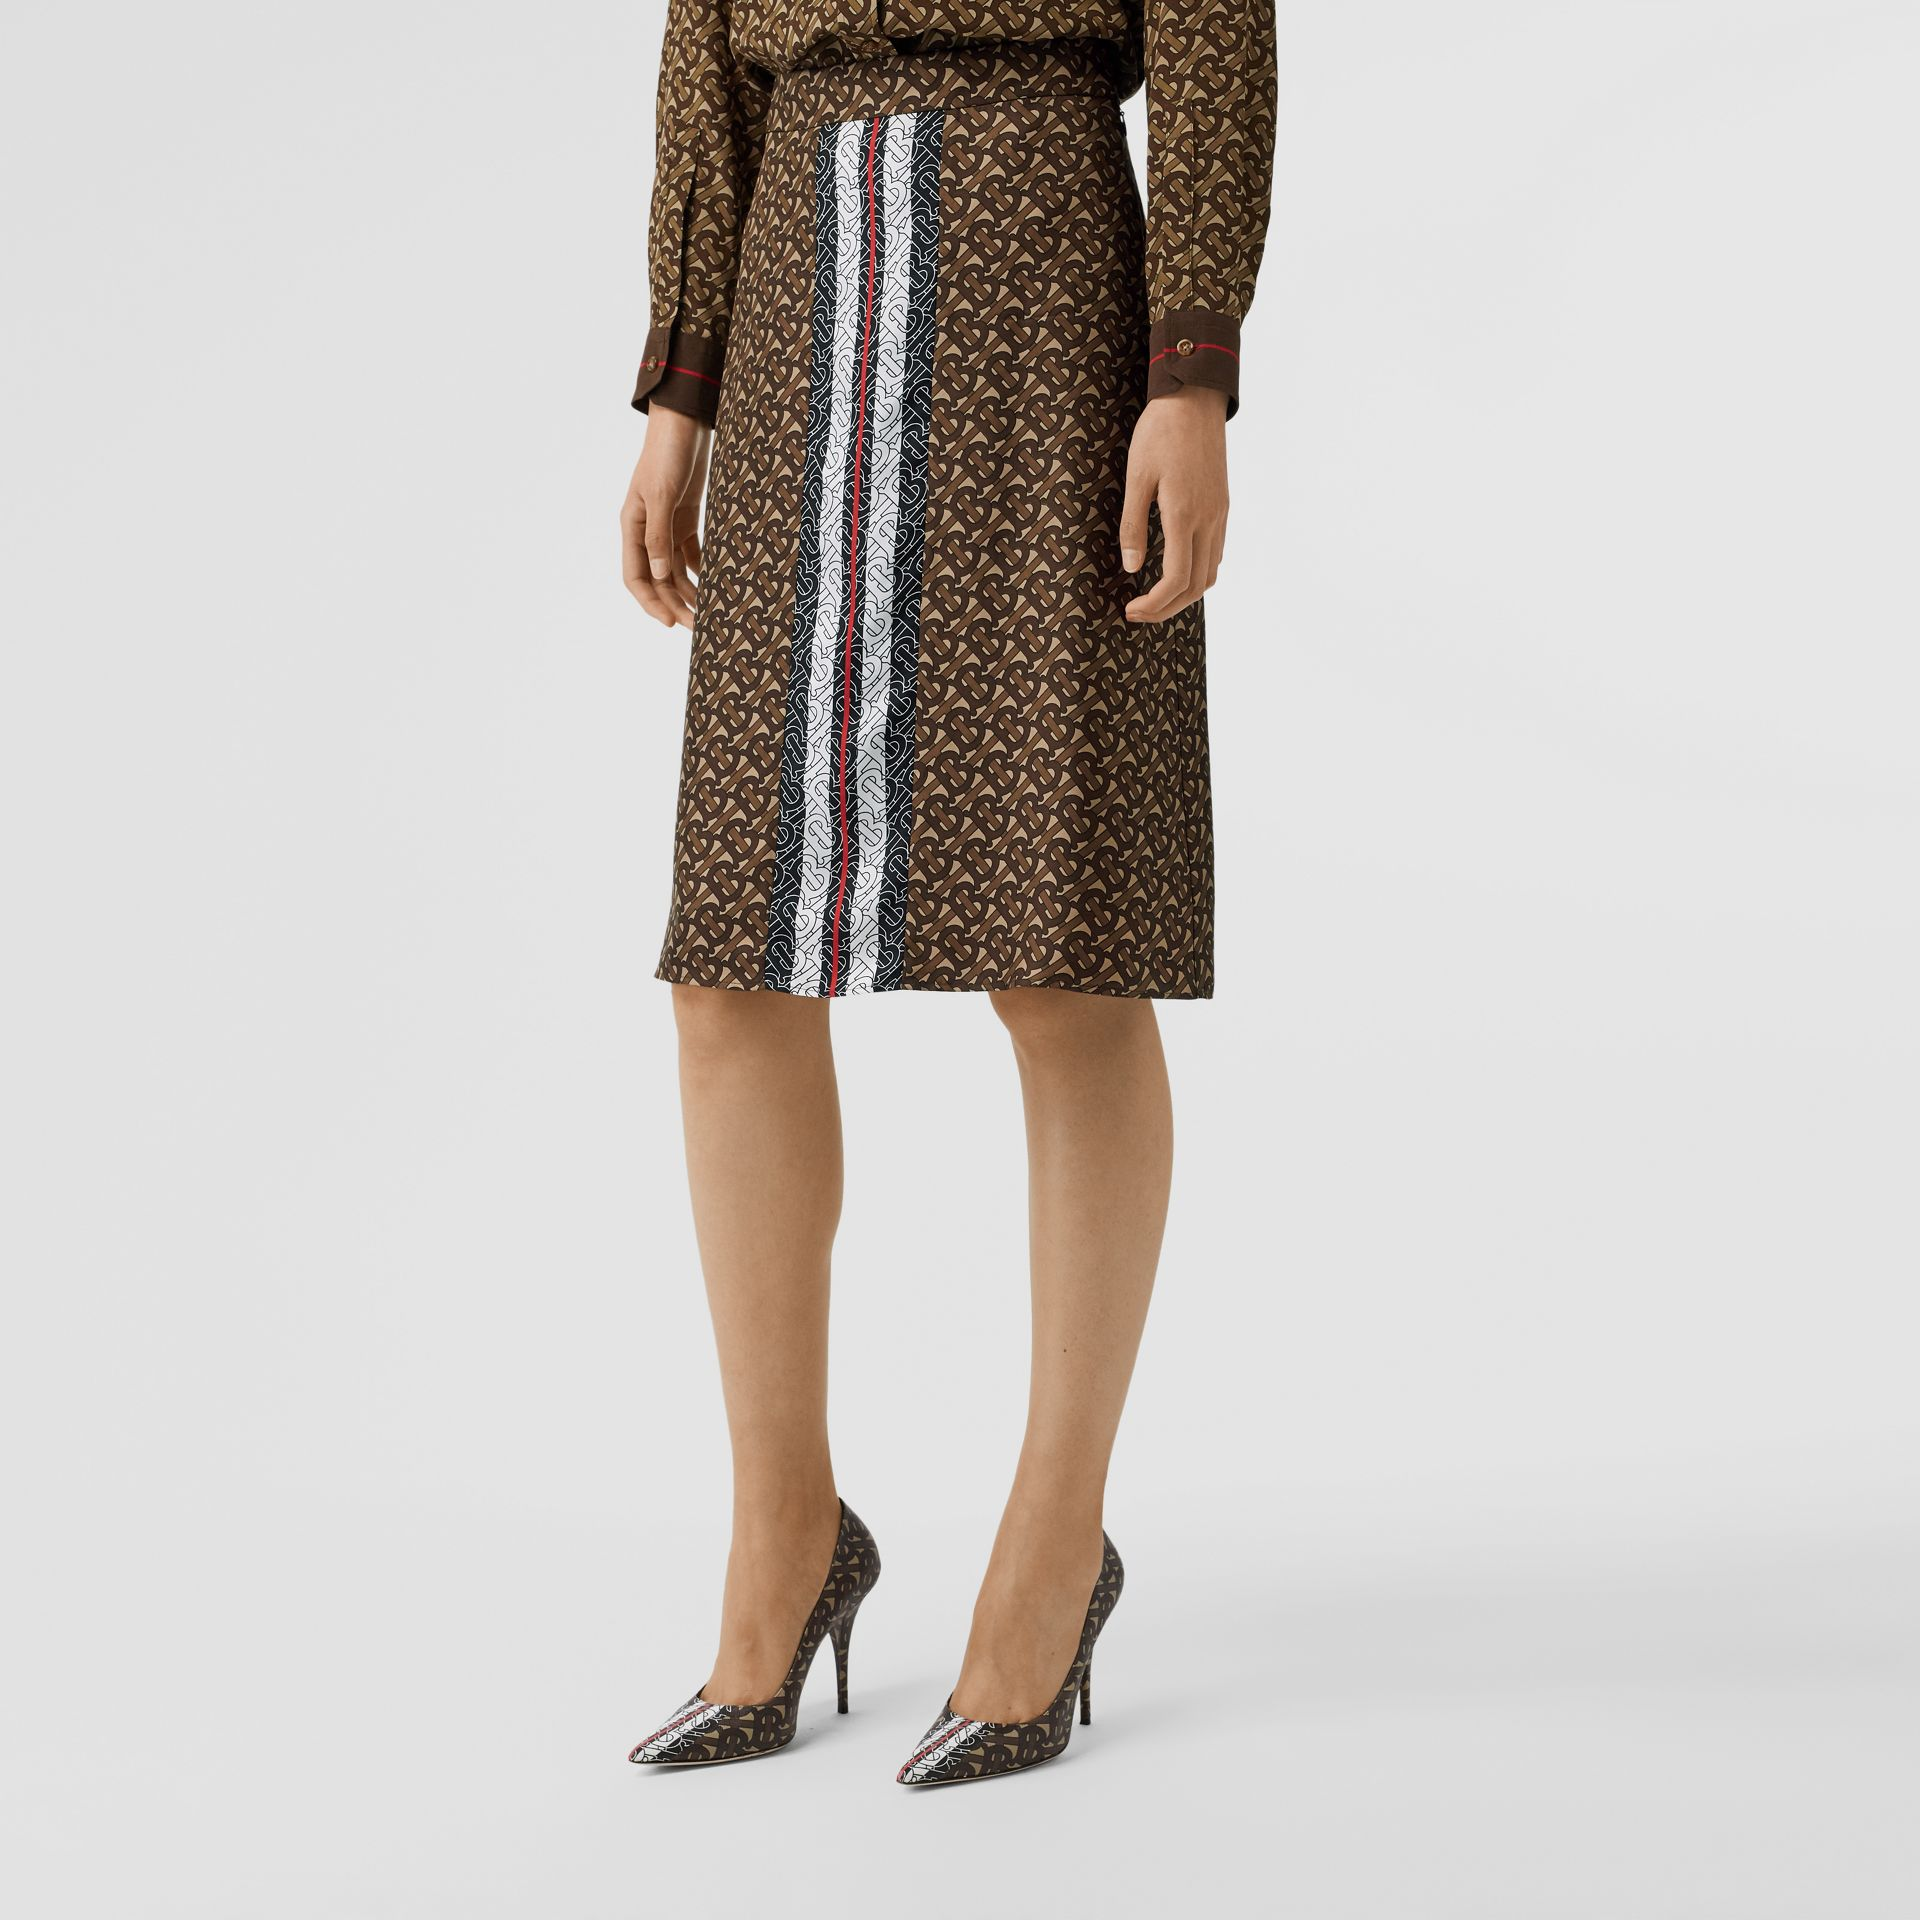 Monogram Stripe Print Silk Skirt in Bridle Brown - Women | Burberry - gallery image 4